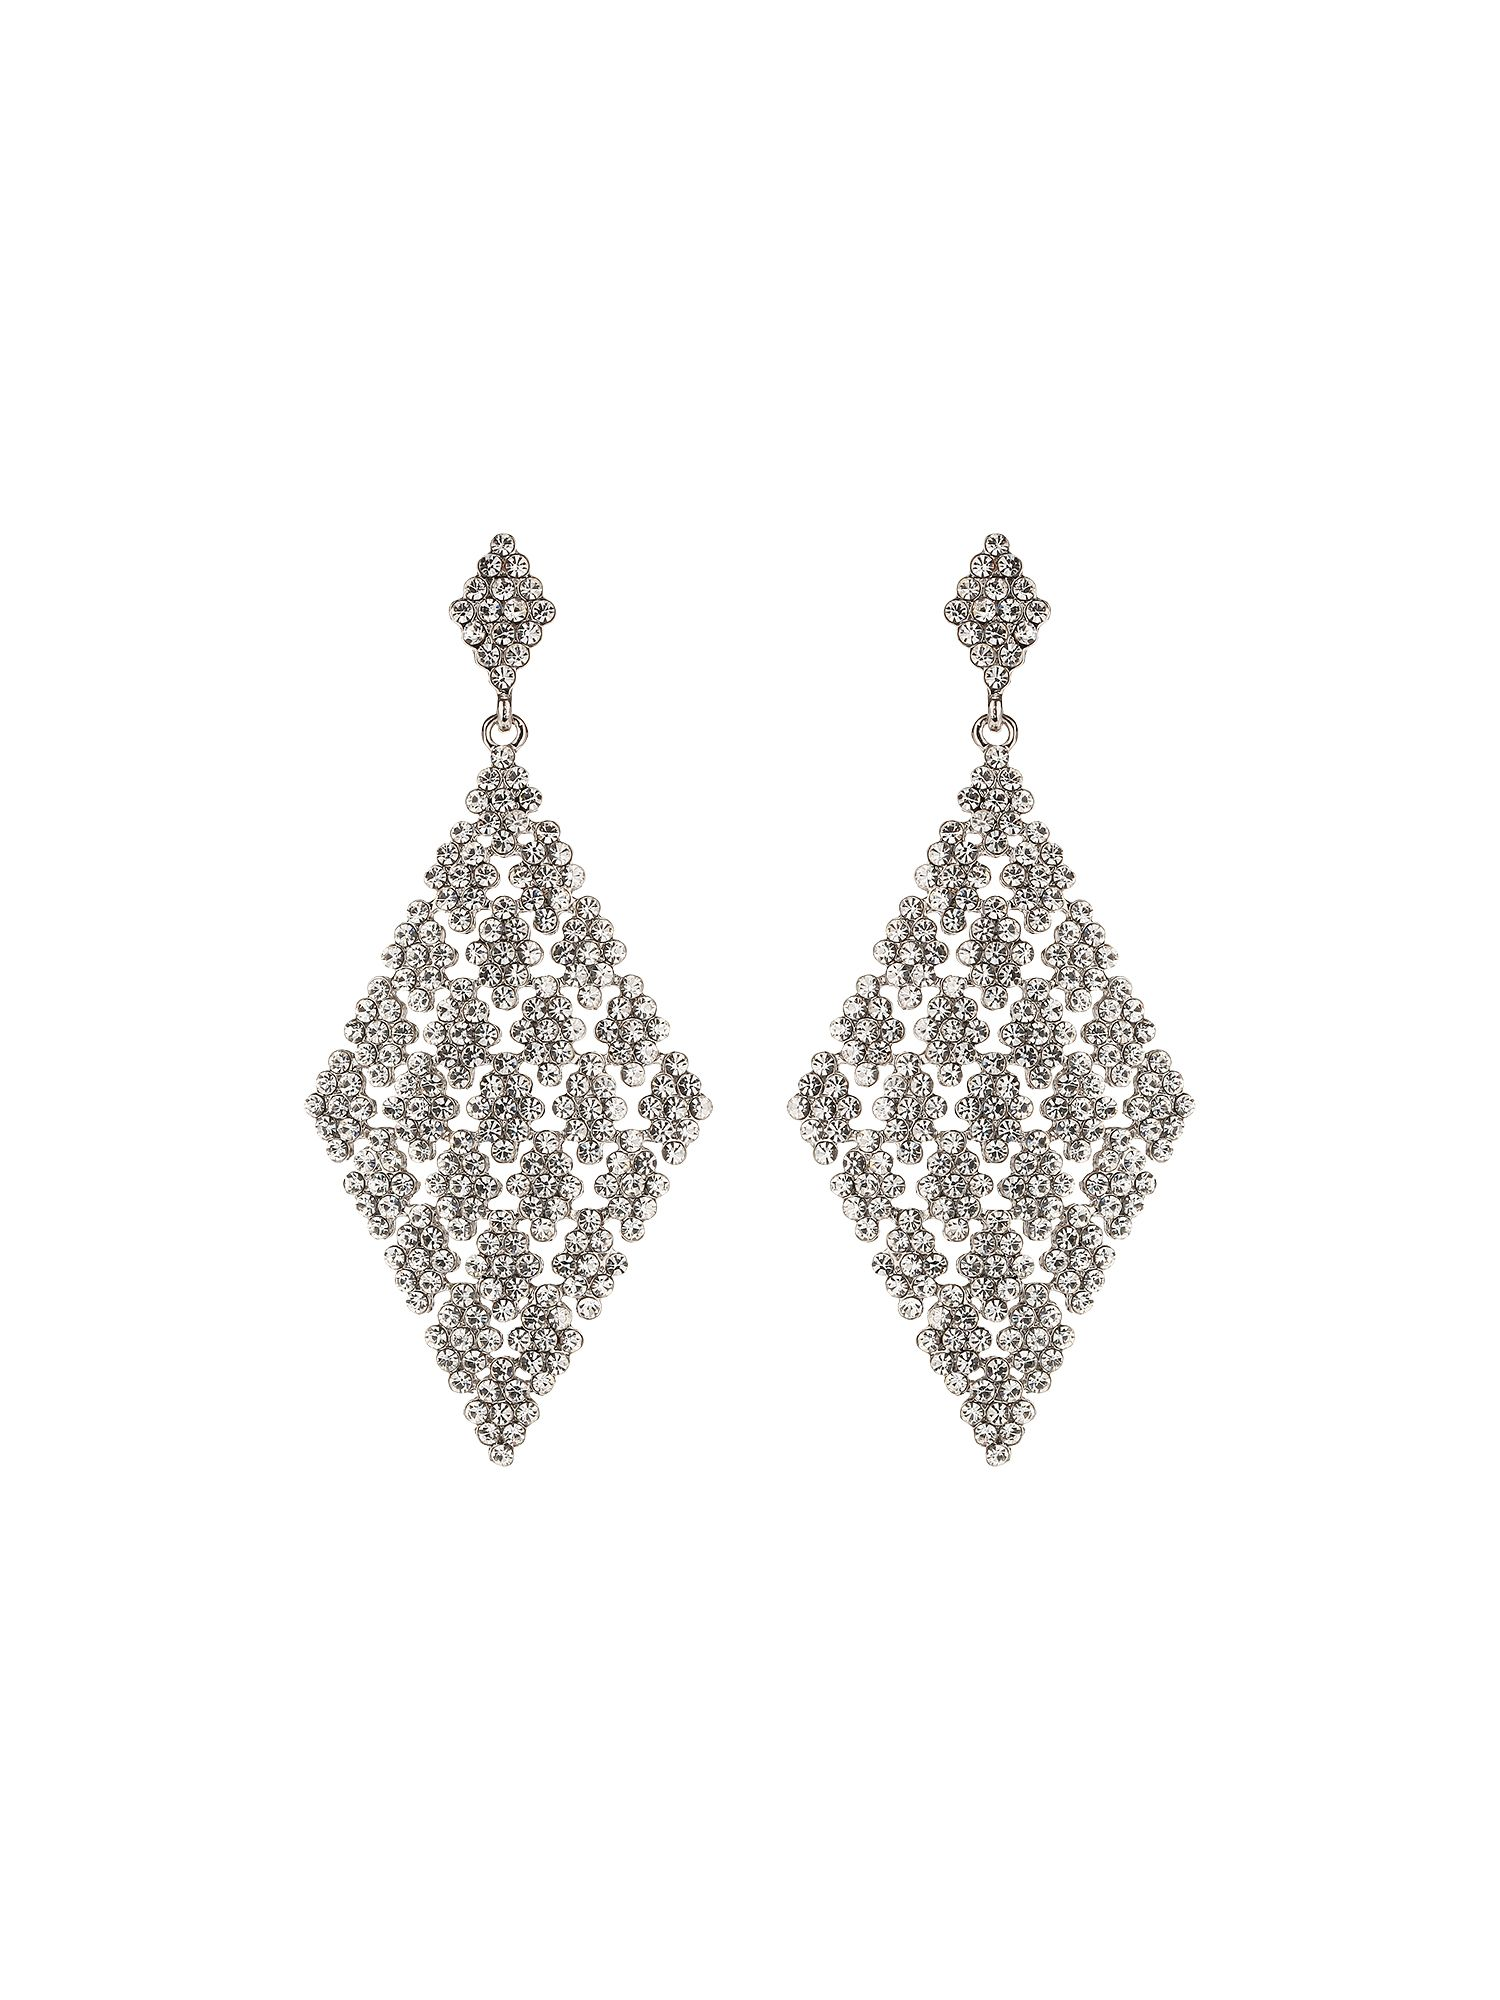 Diamond full earrings